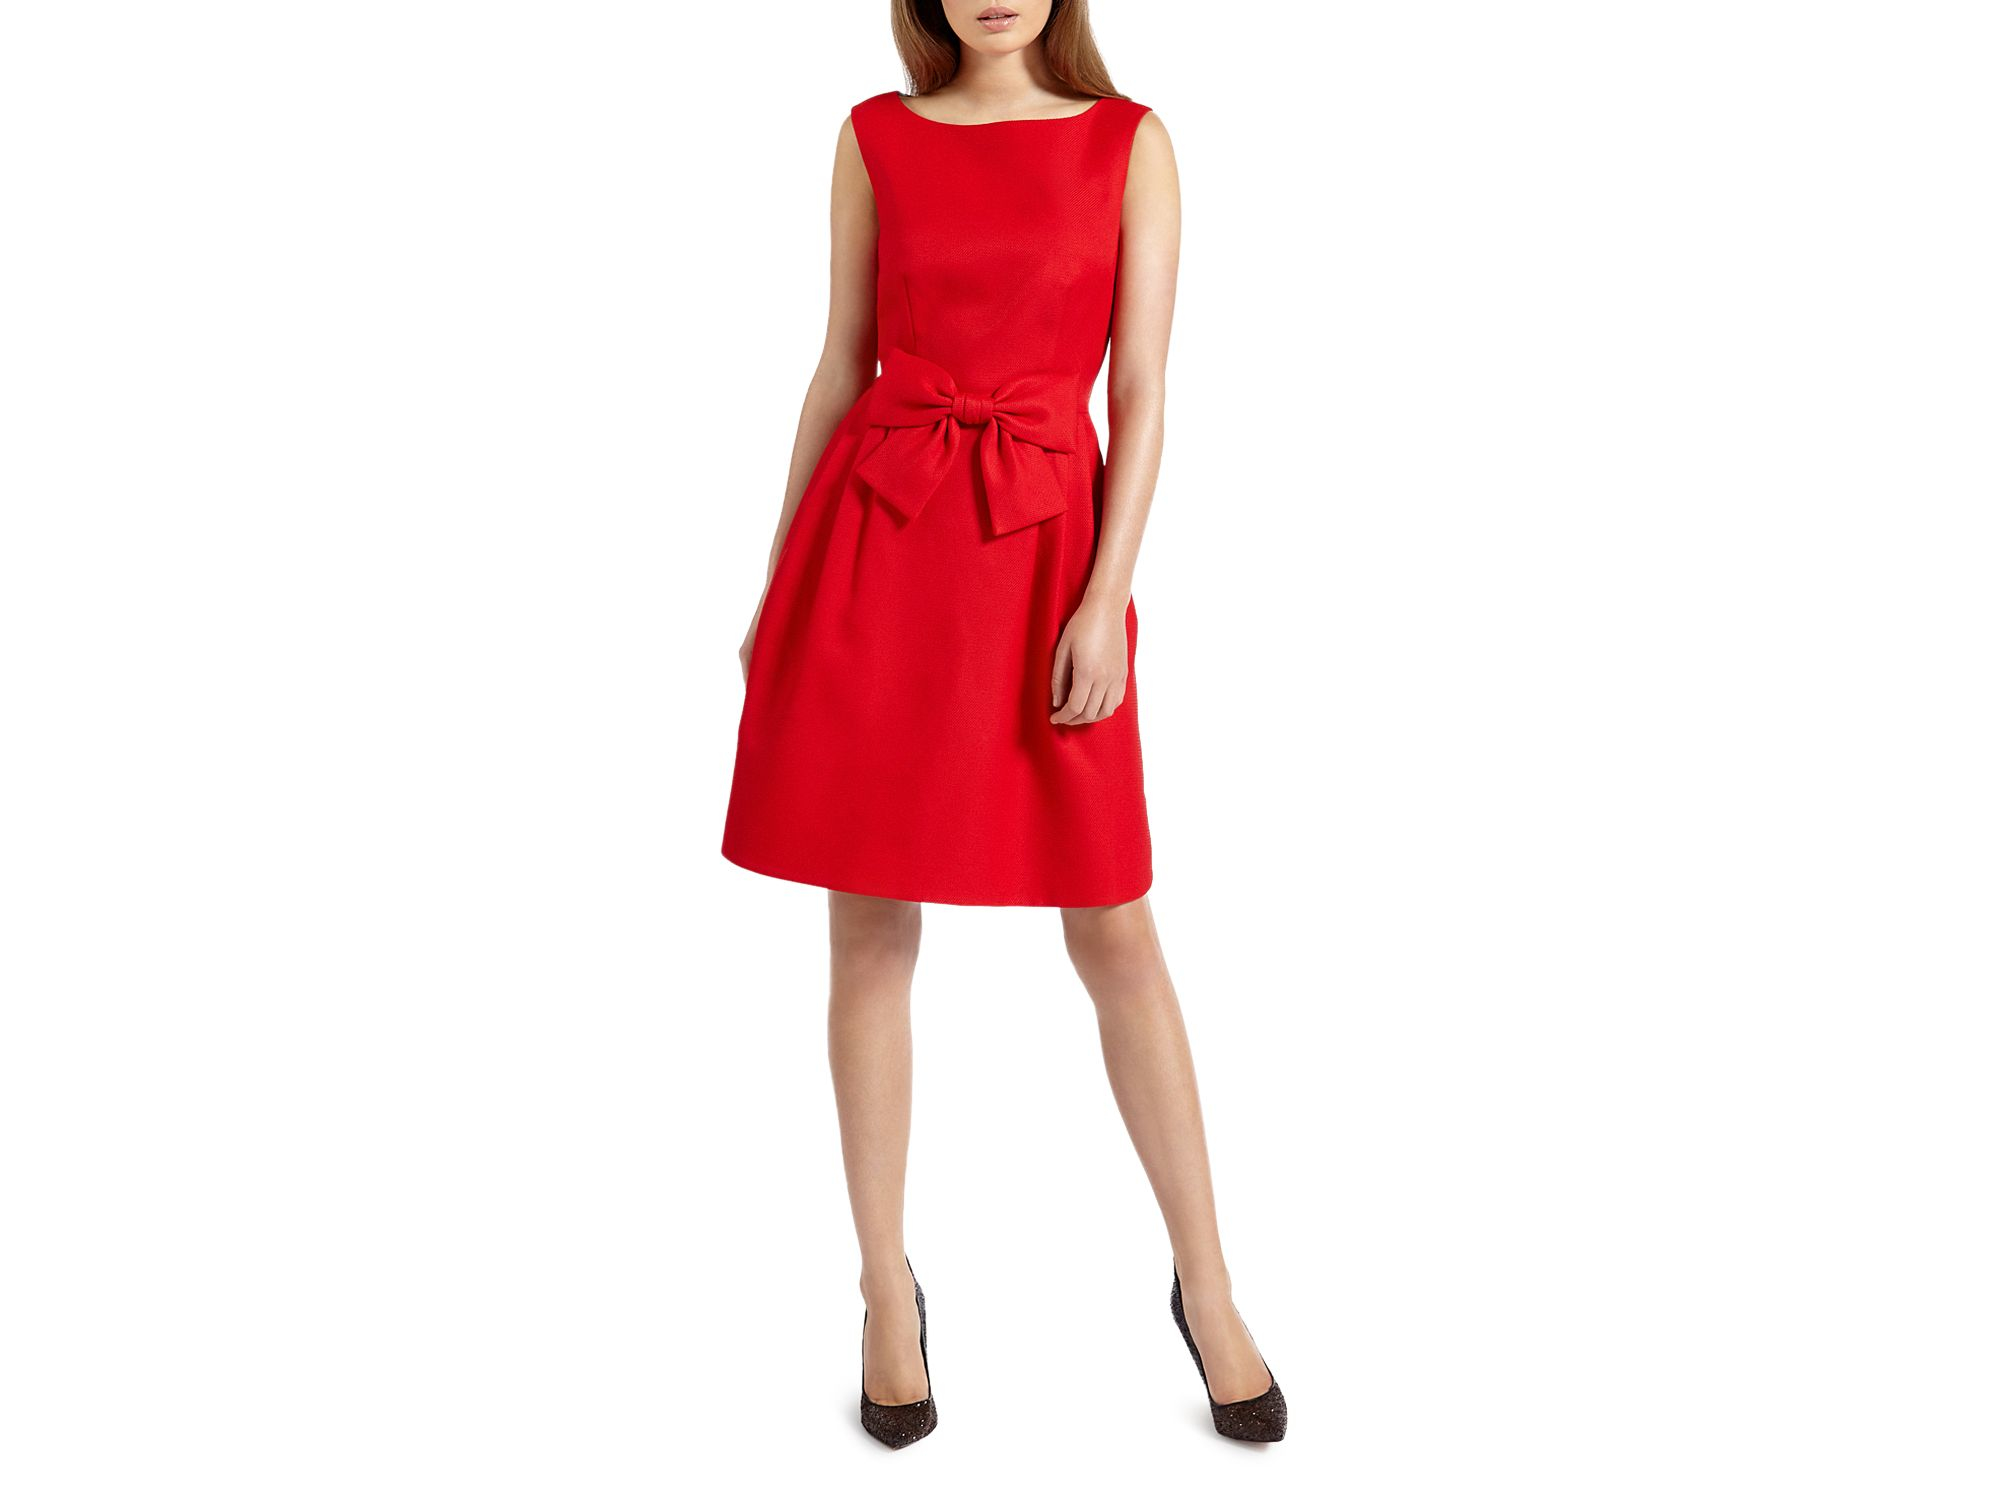 5b03c3d6de934 Lyst - Ted Baker Nuhad Bow Dress in Red